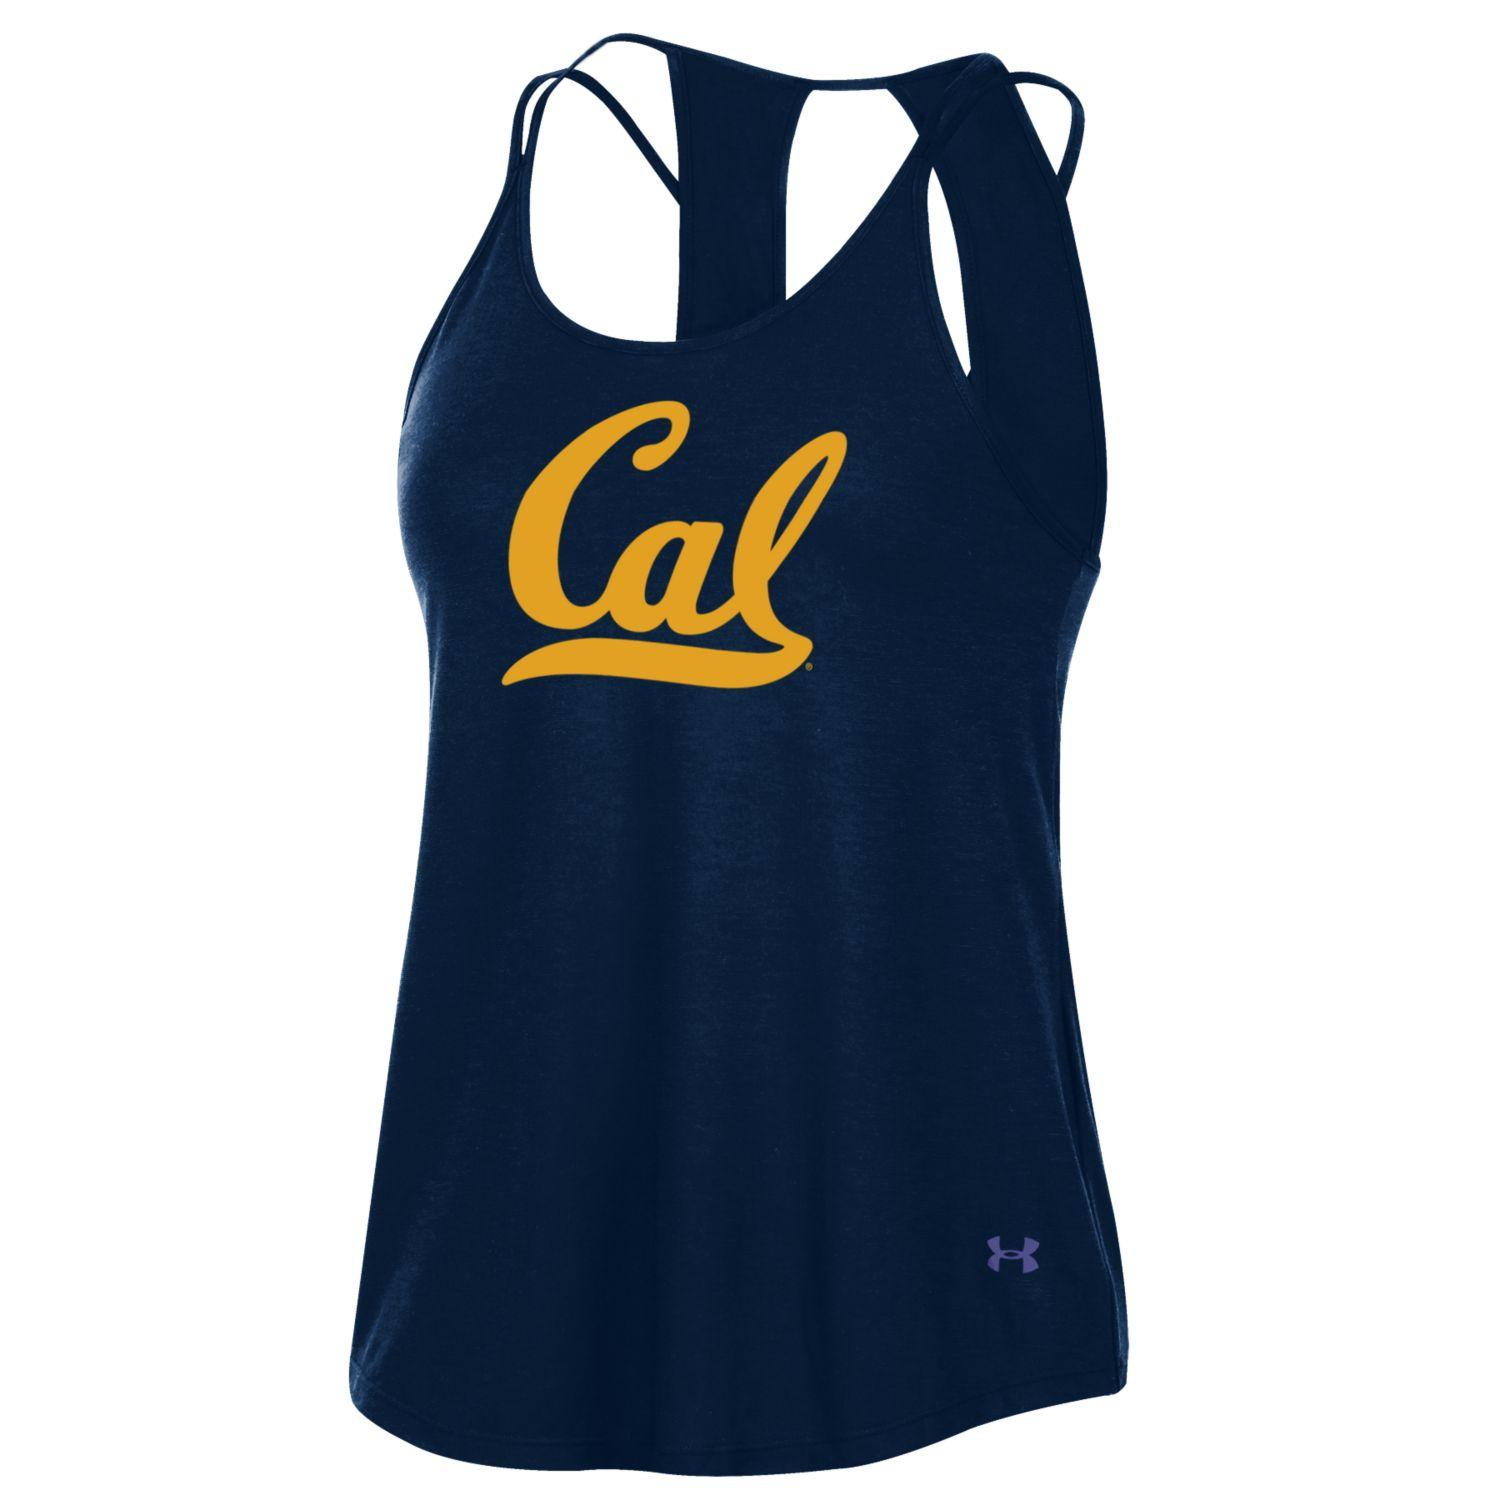 Women's Lux Tank Under Armour